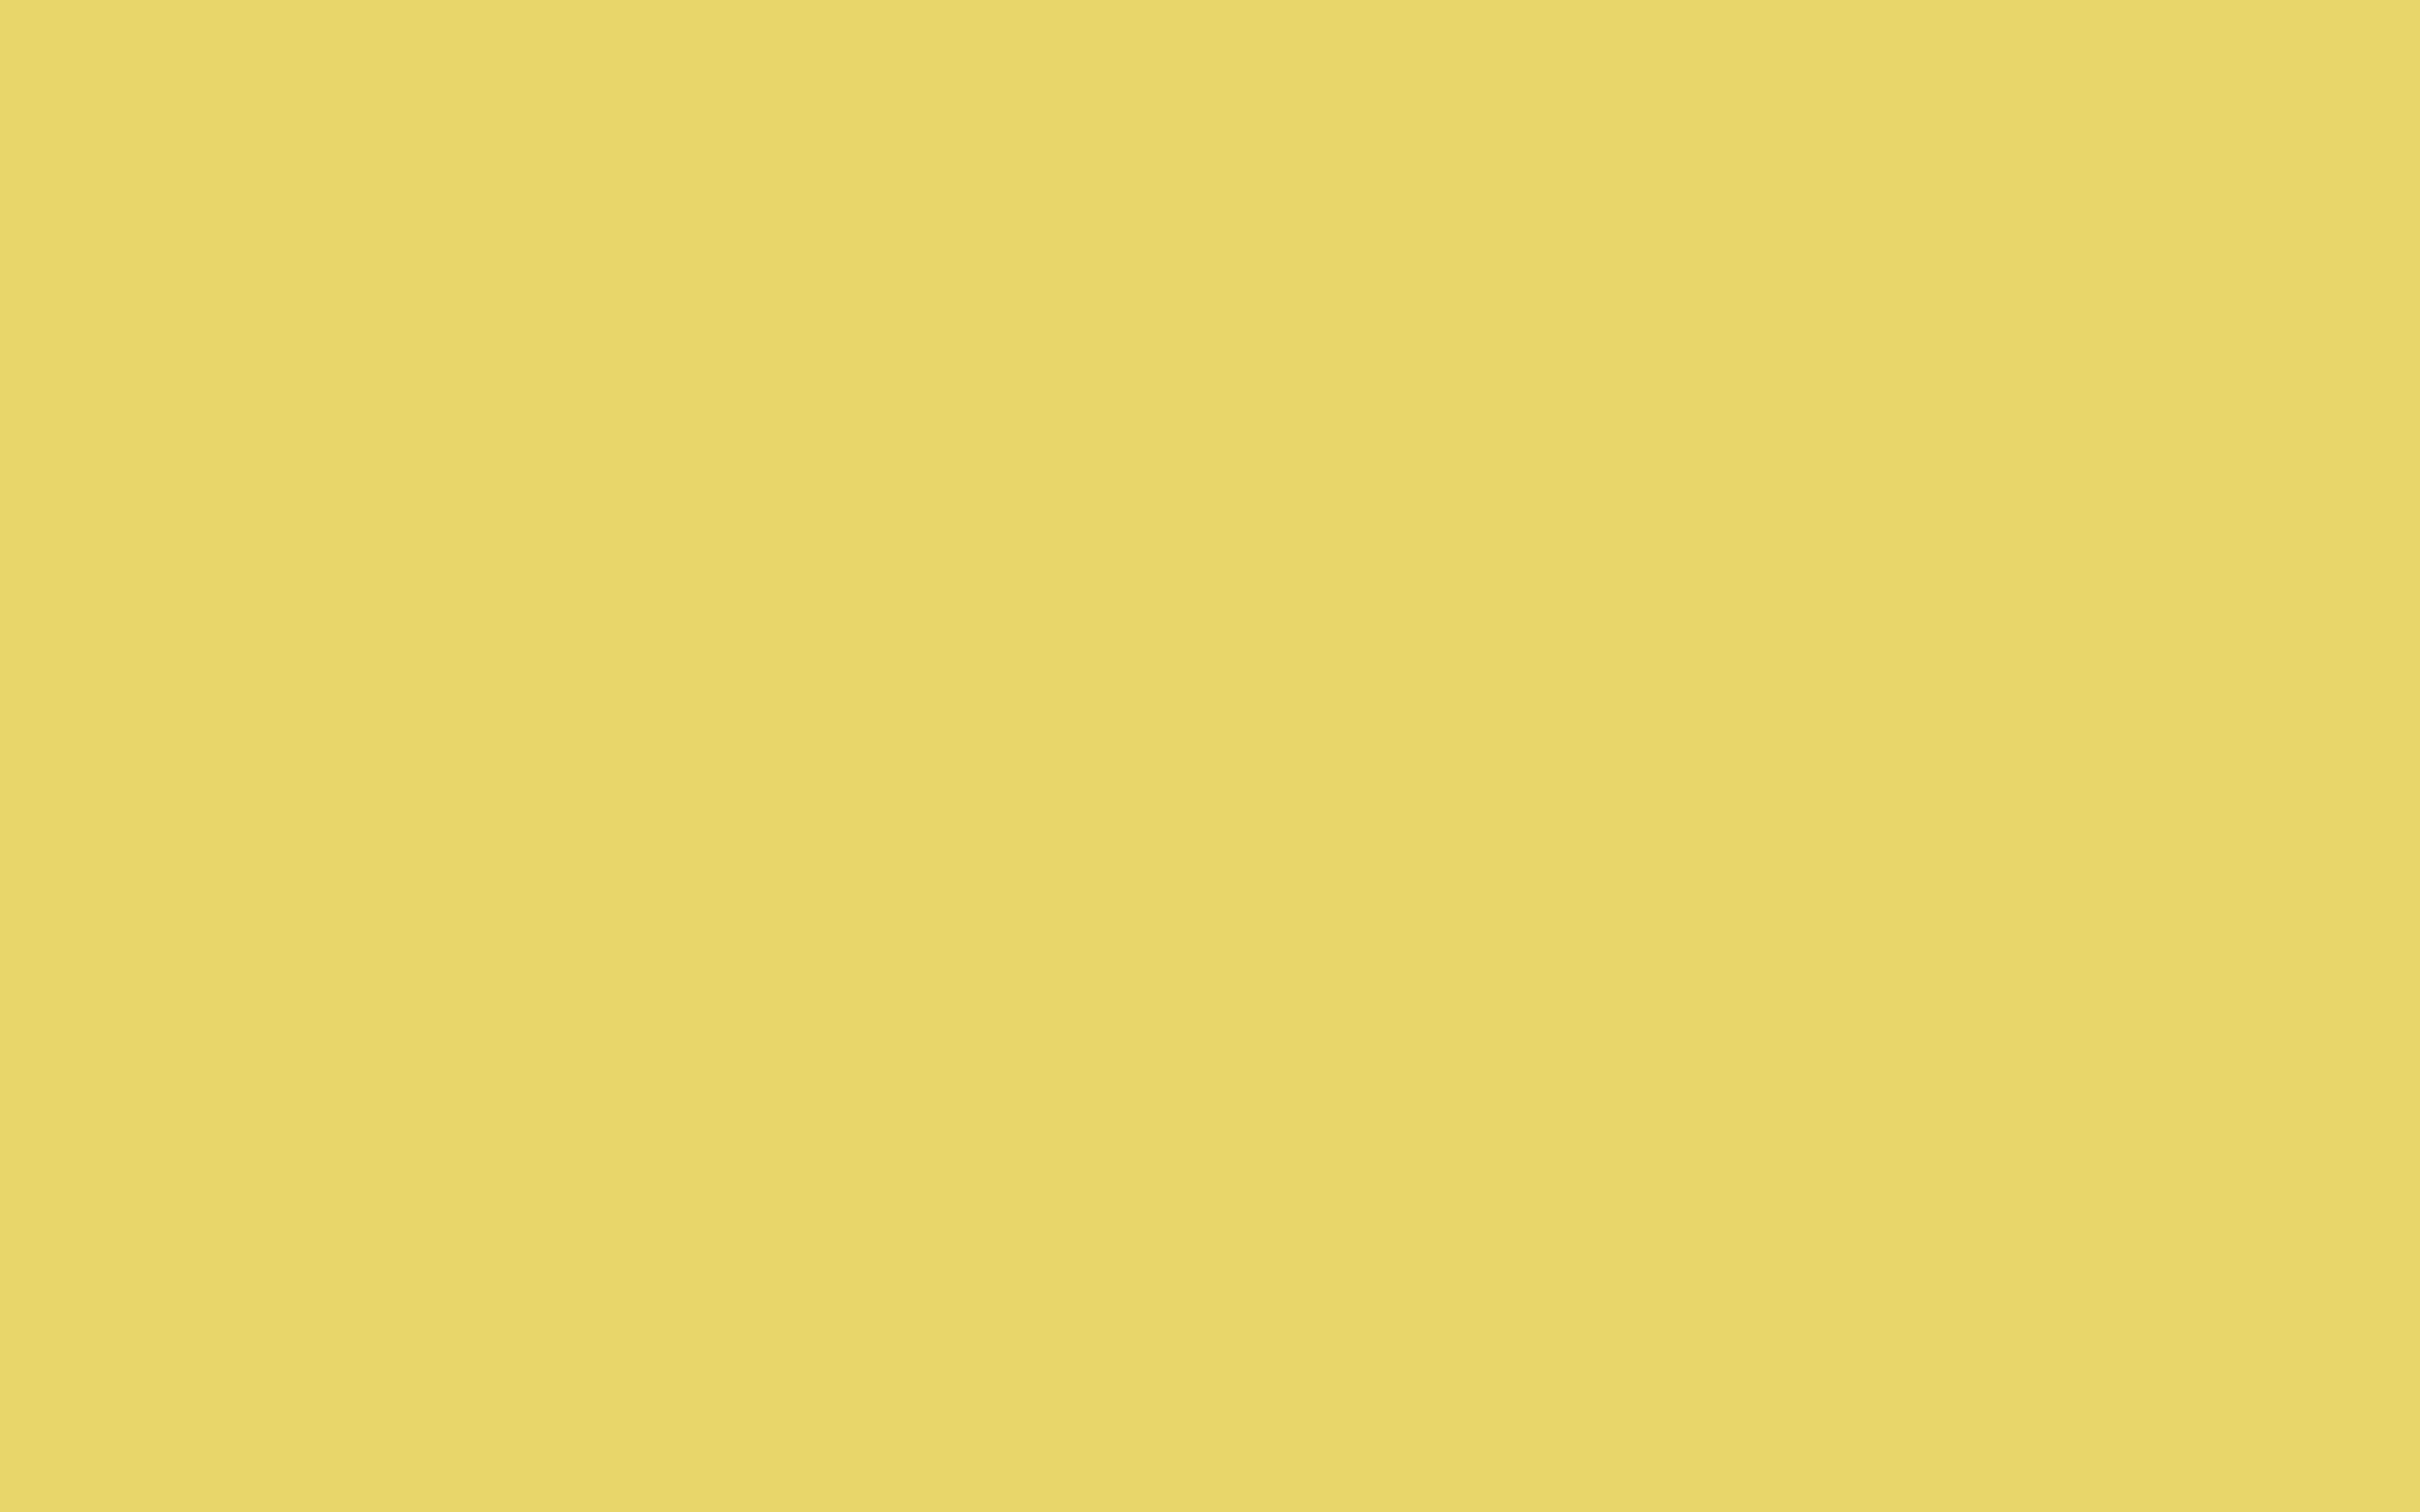 2560x1600 Hansa Yellow Solid Color Background